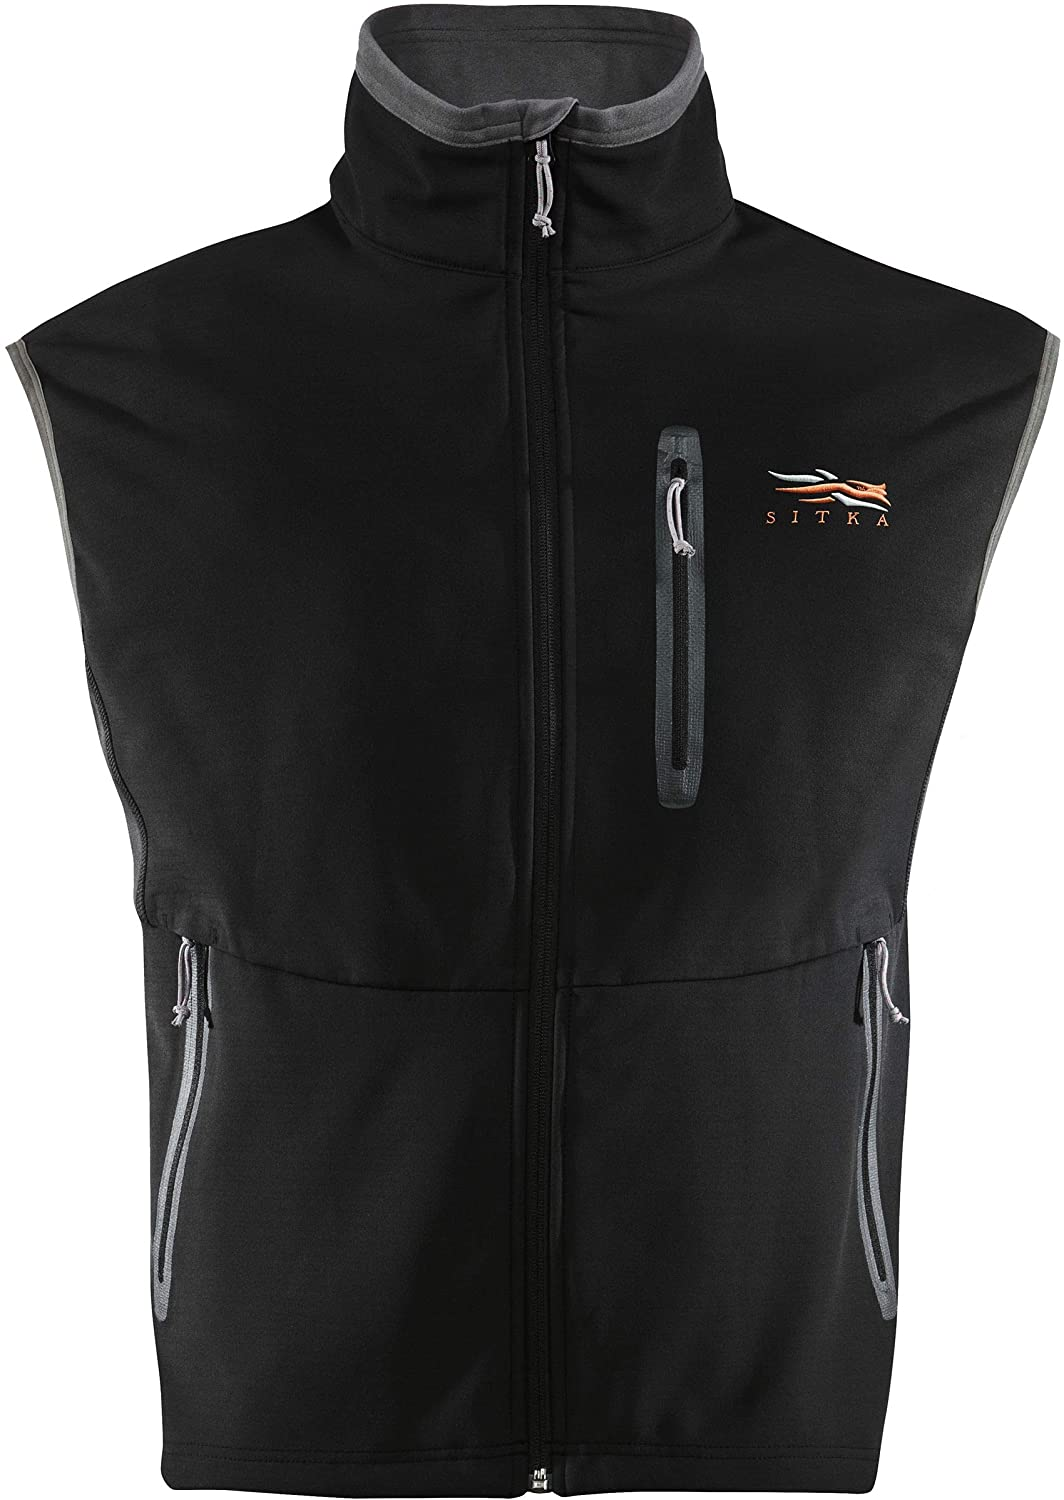 SITKA Gear Men's Jetstream Windstopper Water Repellent Hunting Vest, Black, XX-Large